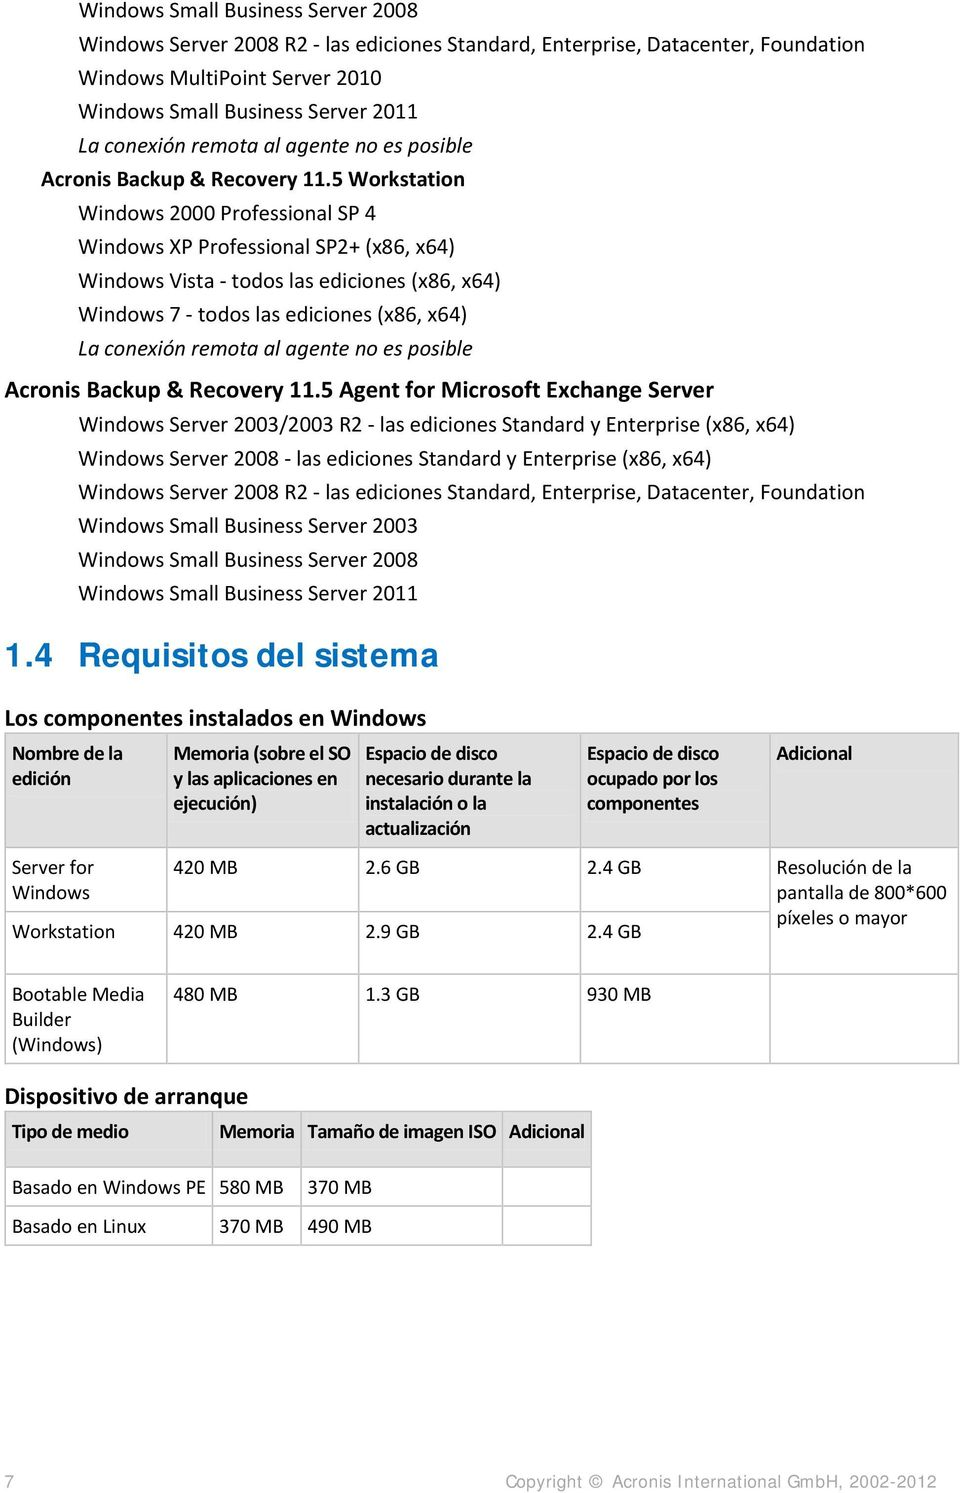 5 Workstation Windows 2000 Professional SP 4 Windows XP Professional SP2+ (x86, x64) Windows Vista - todos las ediciones (x86, x64) Windows 7 - todos las ediciones (x86, x64) La conexión 5 Agent for